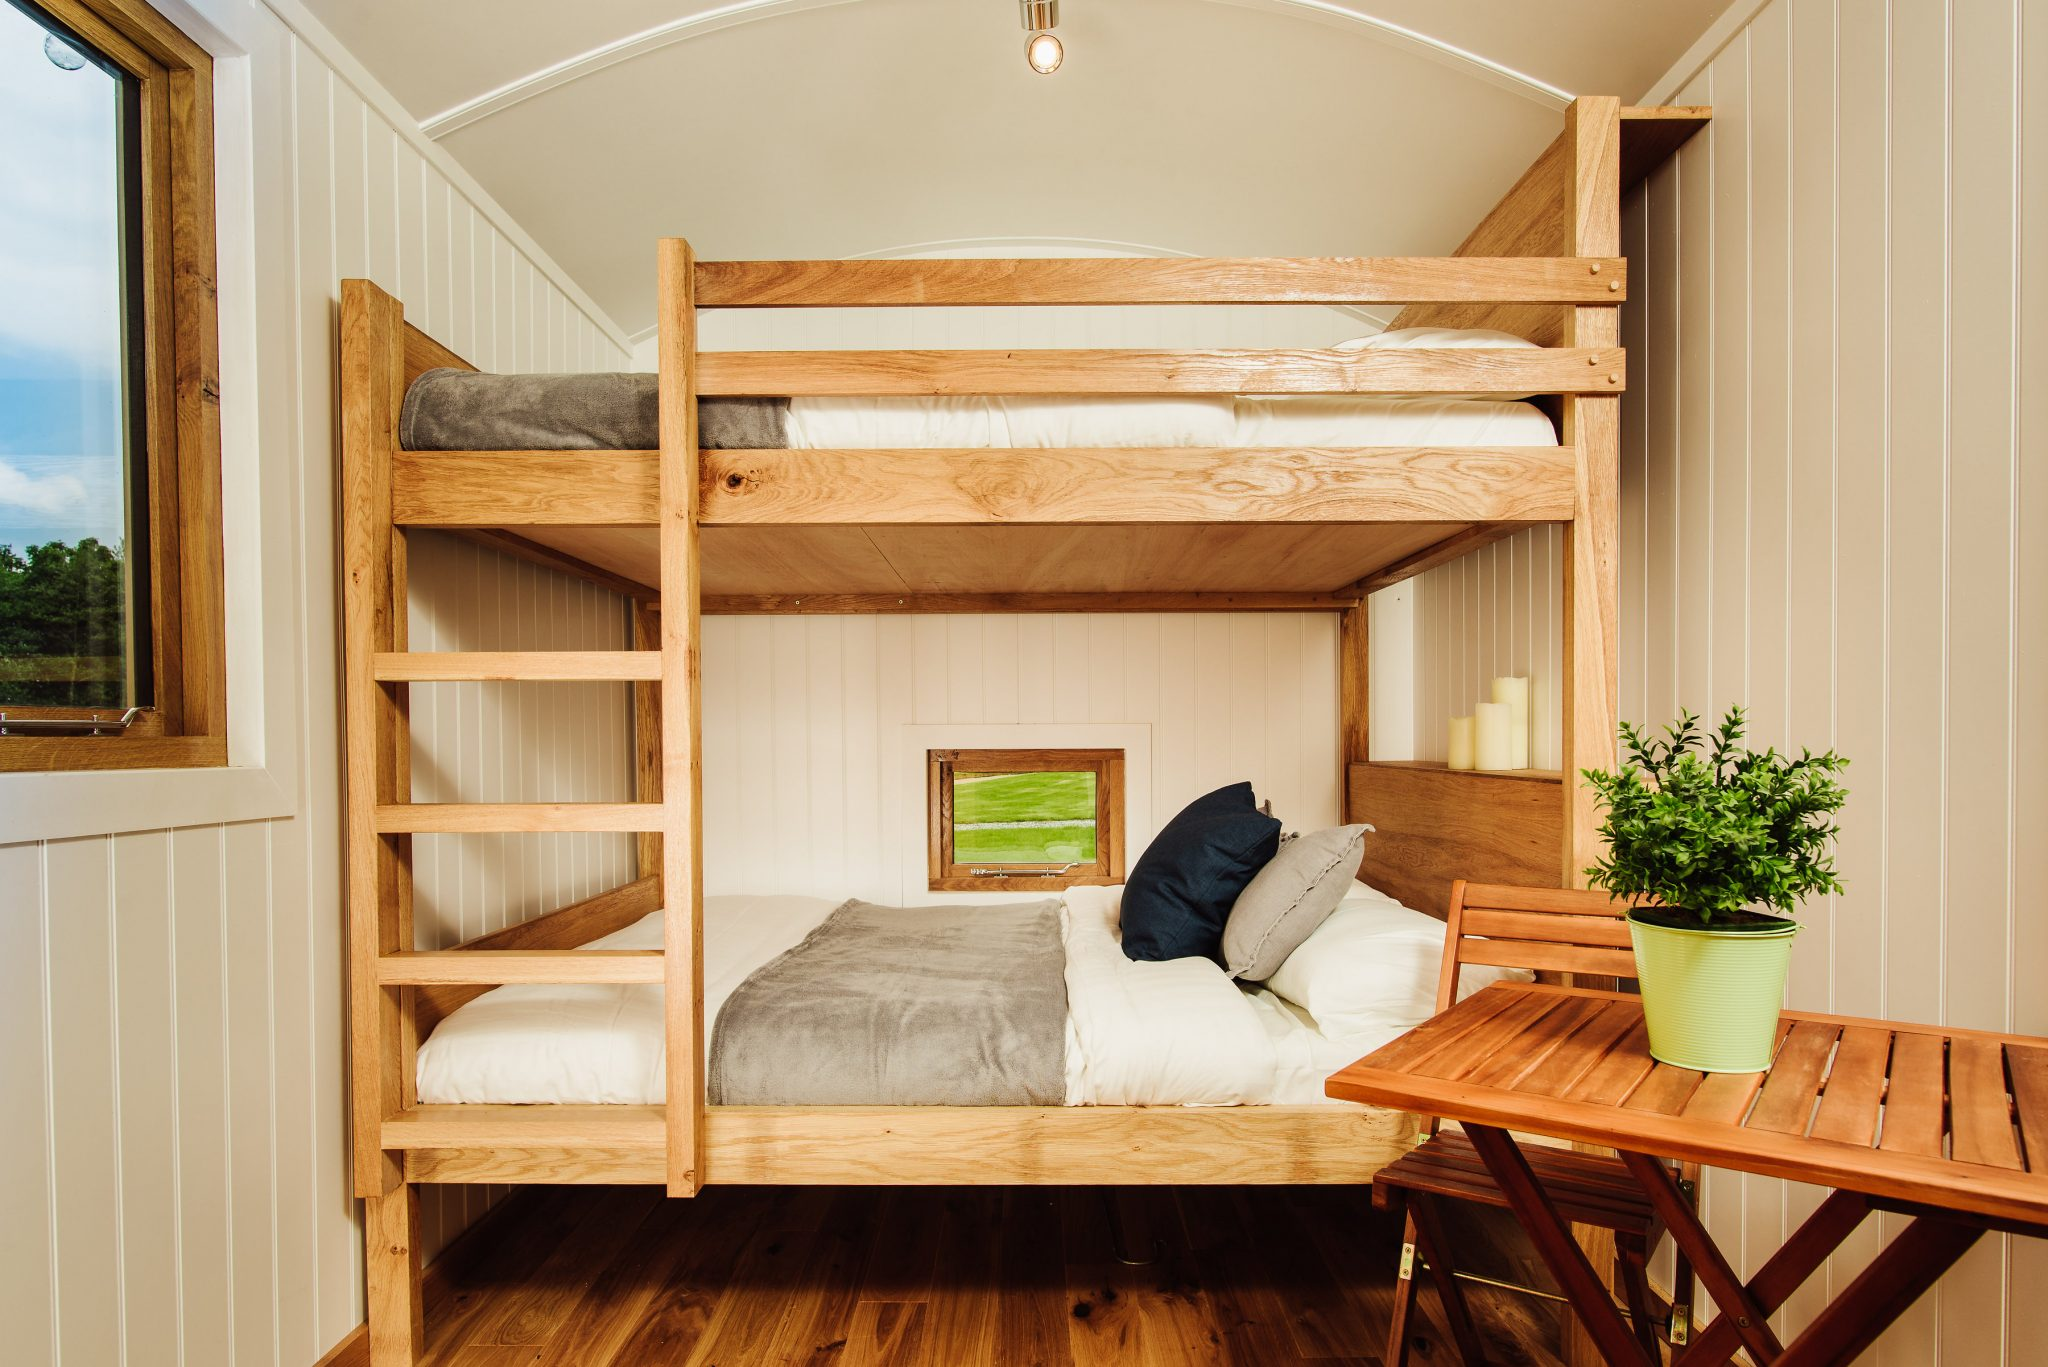 Shepherds Huts solid oak bunk beds